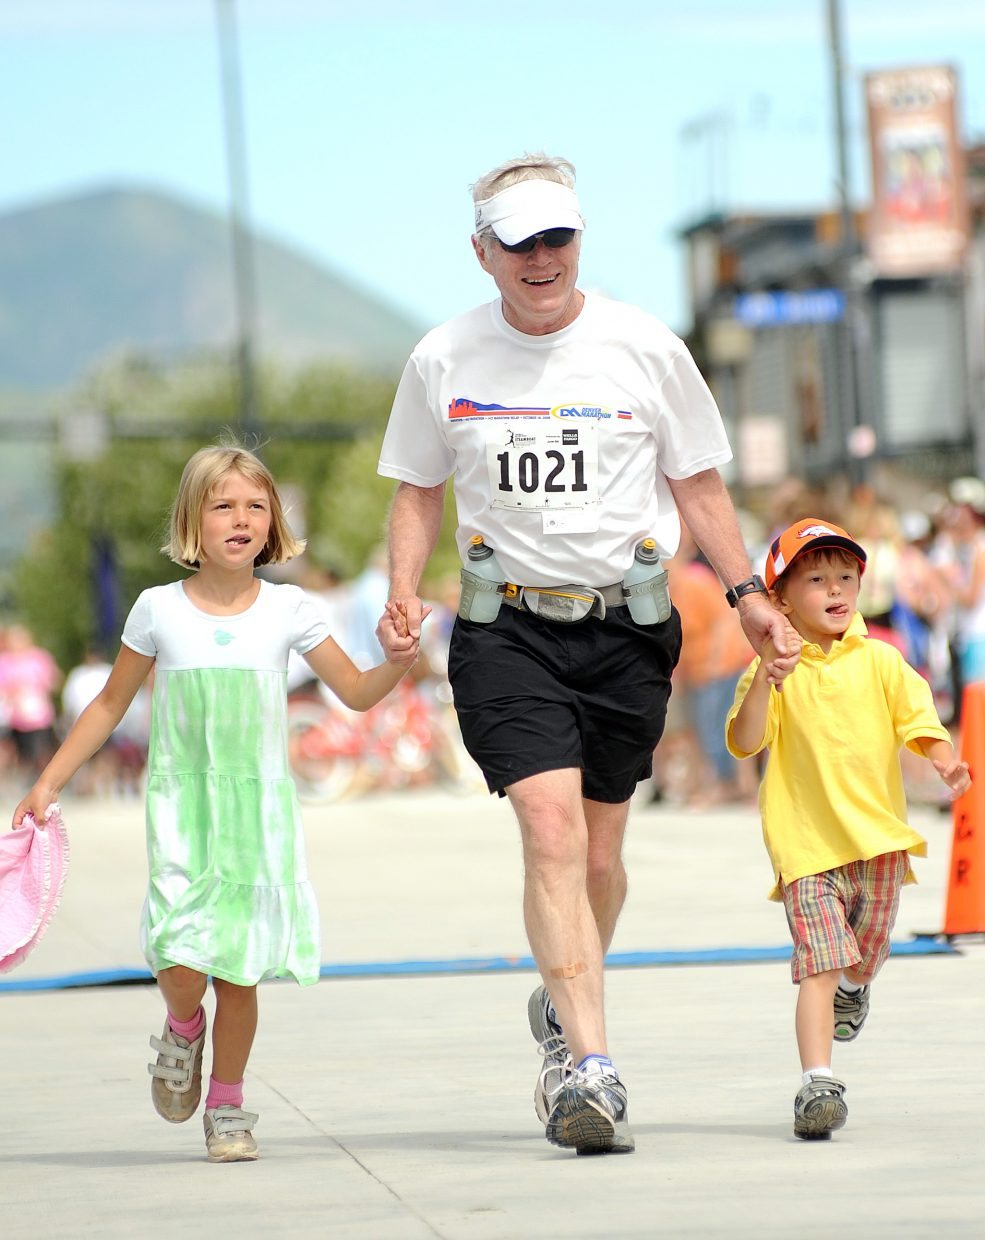 Tom Hurt jogs toward the finish line hand-in-hand with his grandchildren, 6-year-old Cadance and 4-year-old Baylor, Sunday while finishing up the half-marathon race during the Steamboat Marathon.